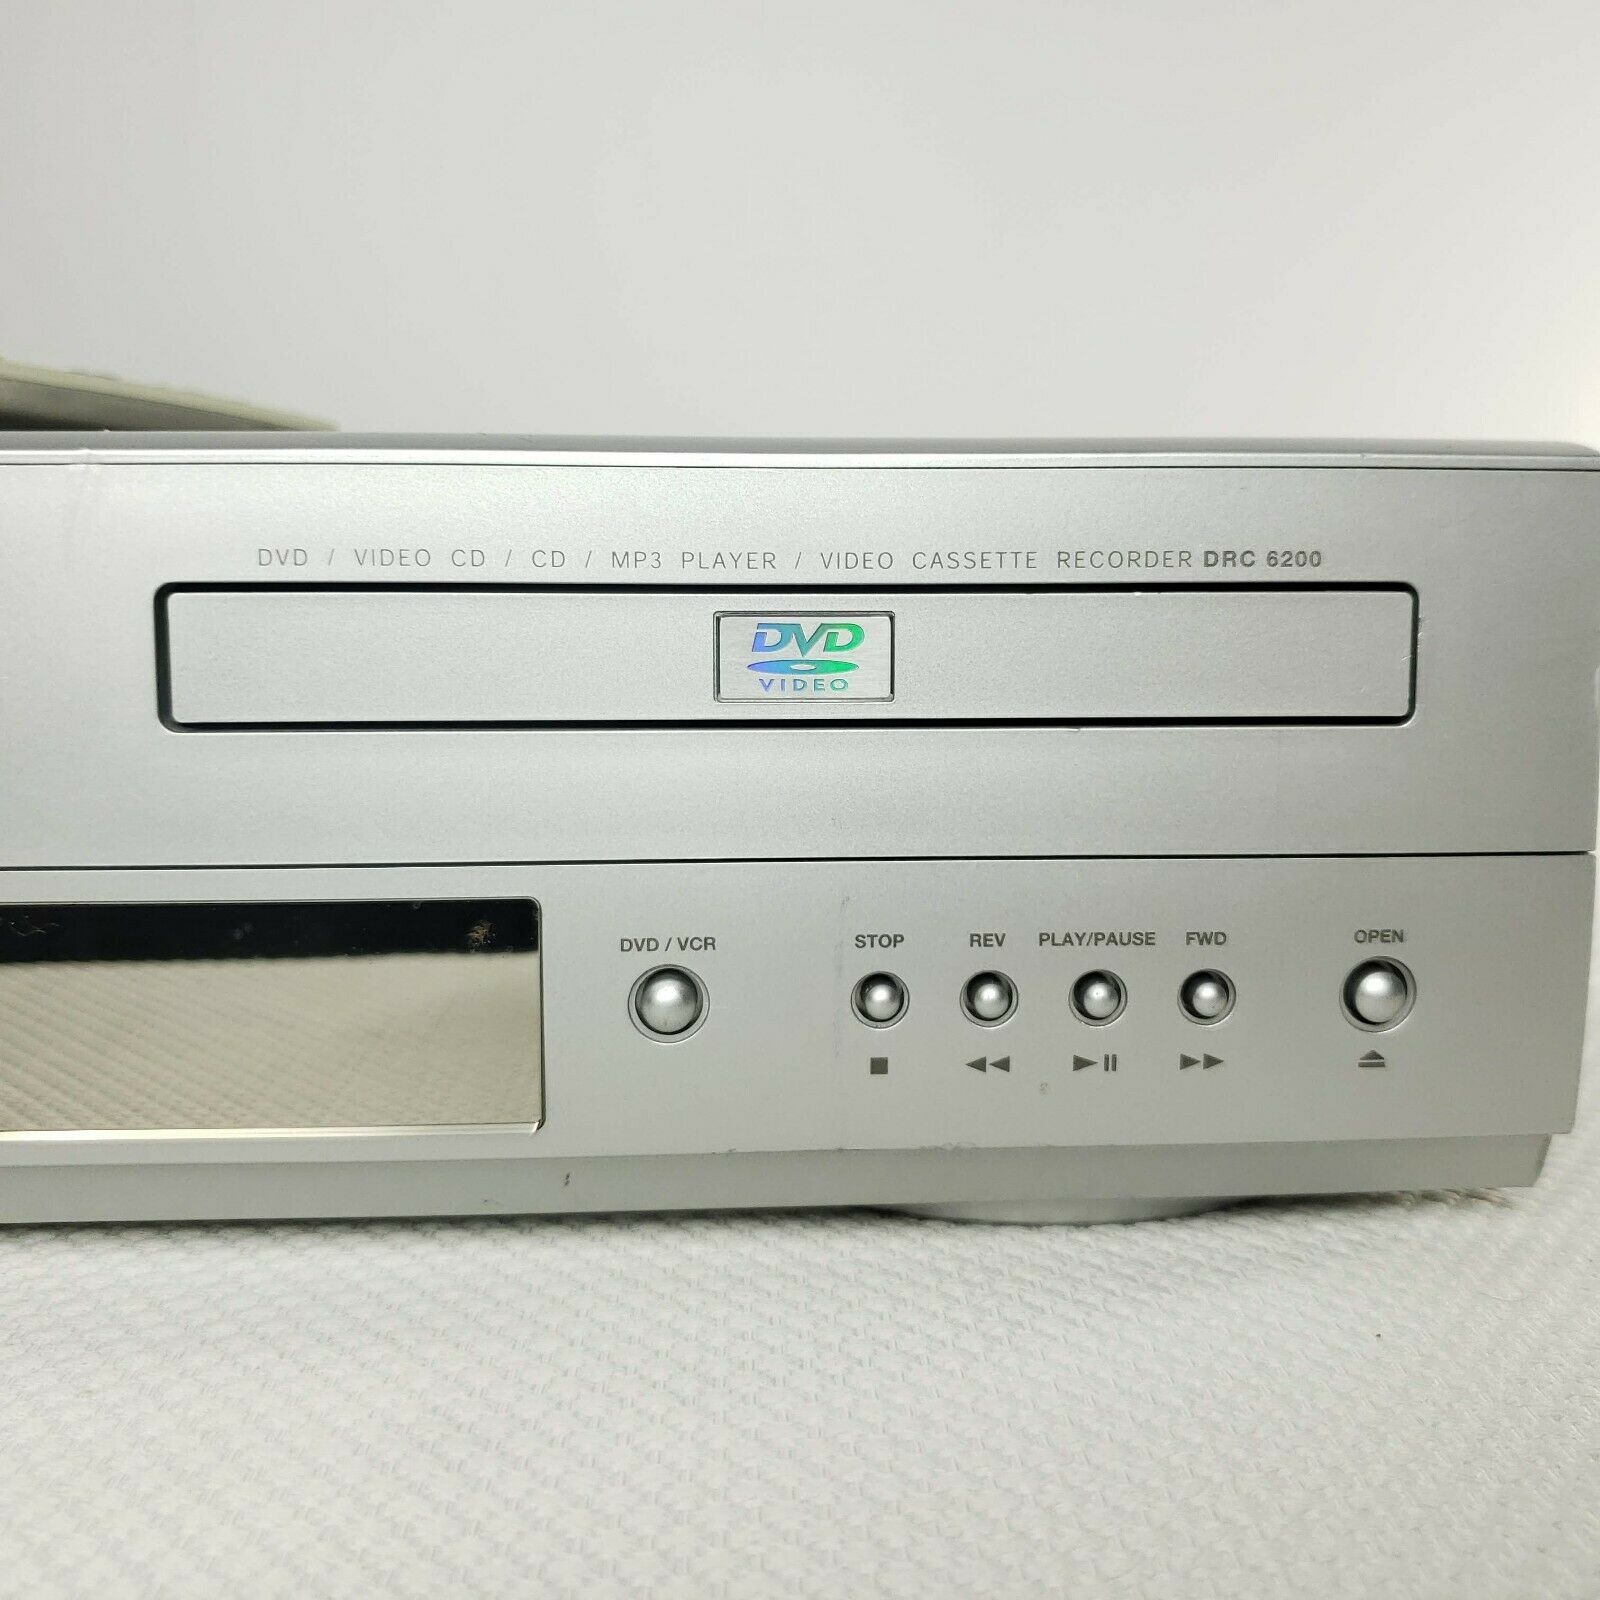 RCA DRC6200N Video Cassette Recorder VHS DVD Player Combo Tested Working Remote